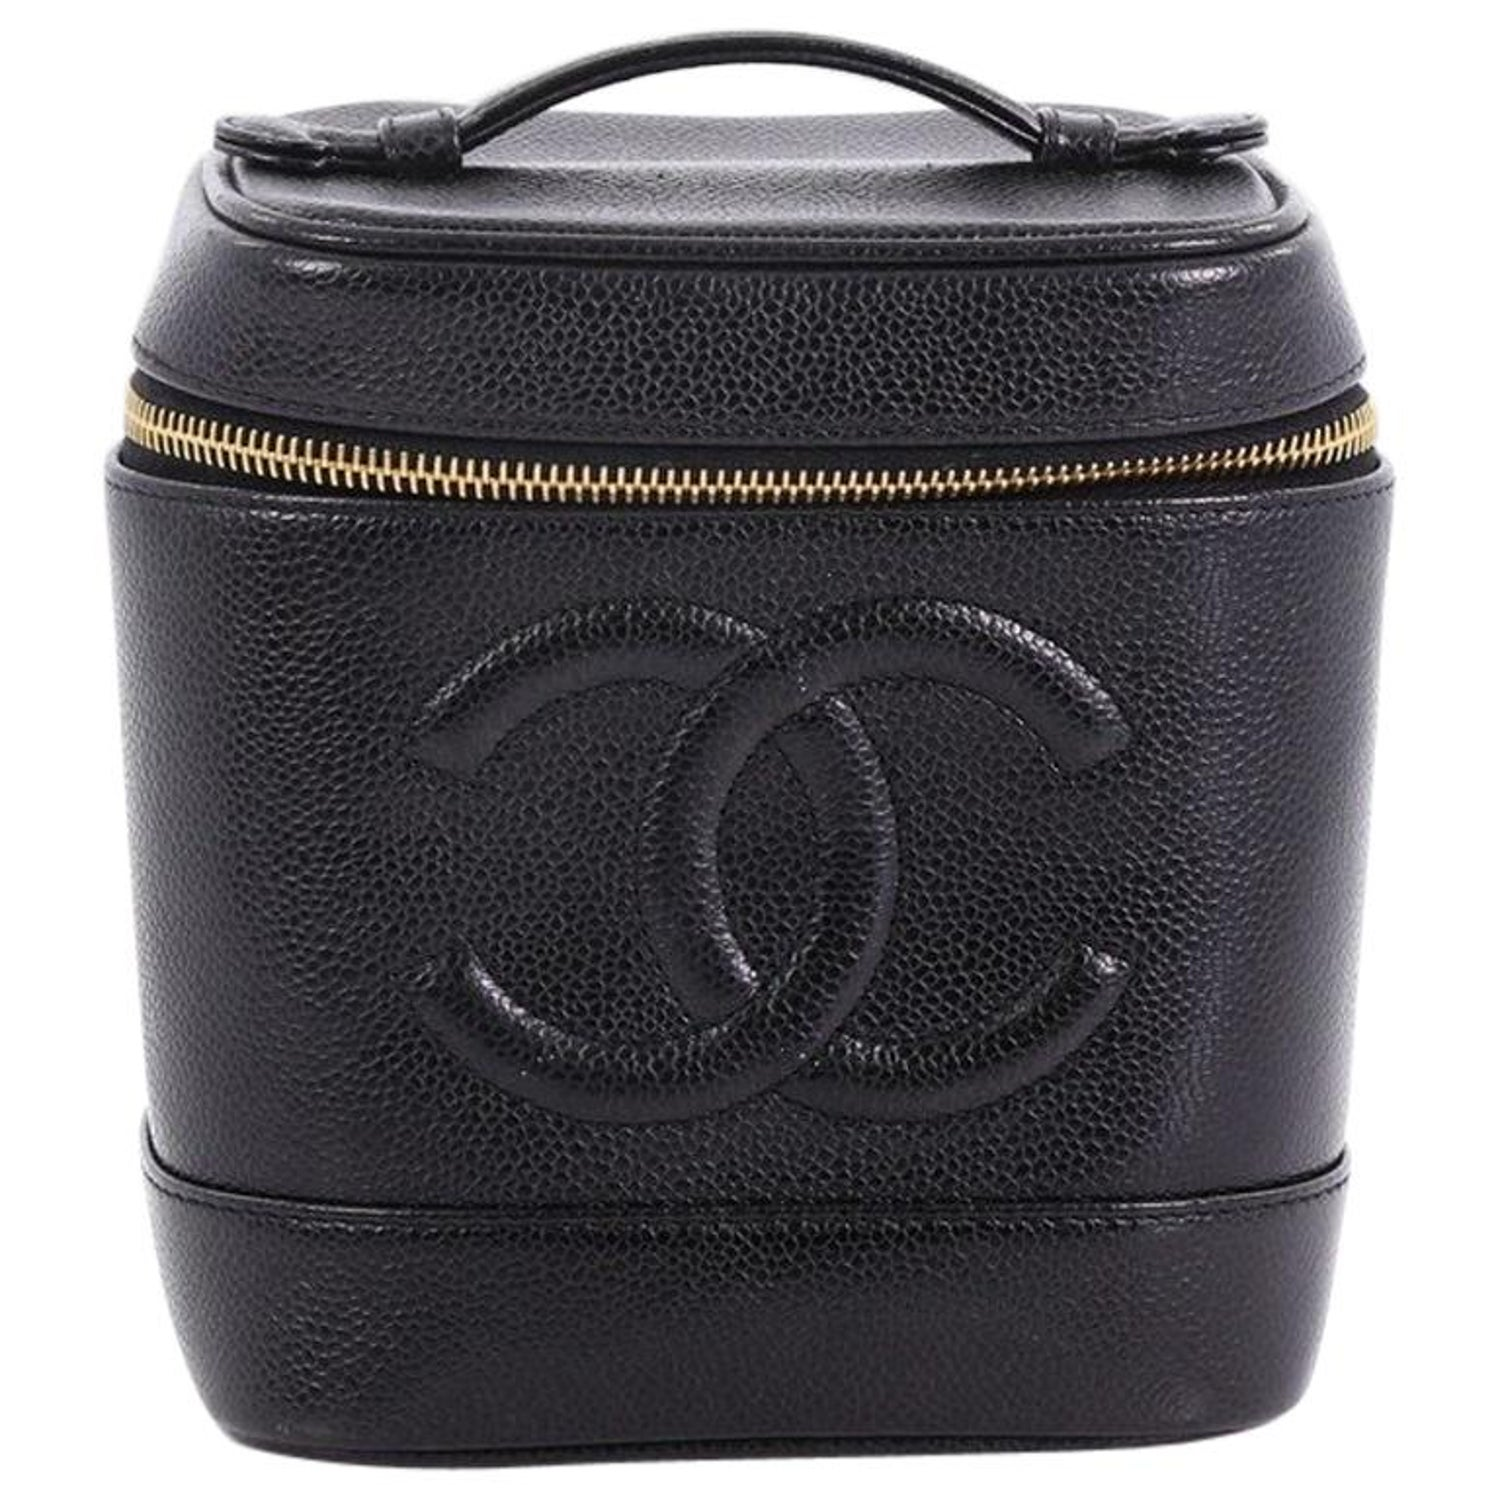 ee316b8a6e0be5 Chanel Vintage Timeless Cosmetic Case Caviar Tall at 1stdibs